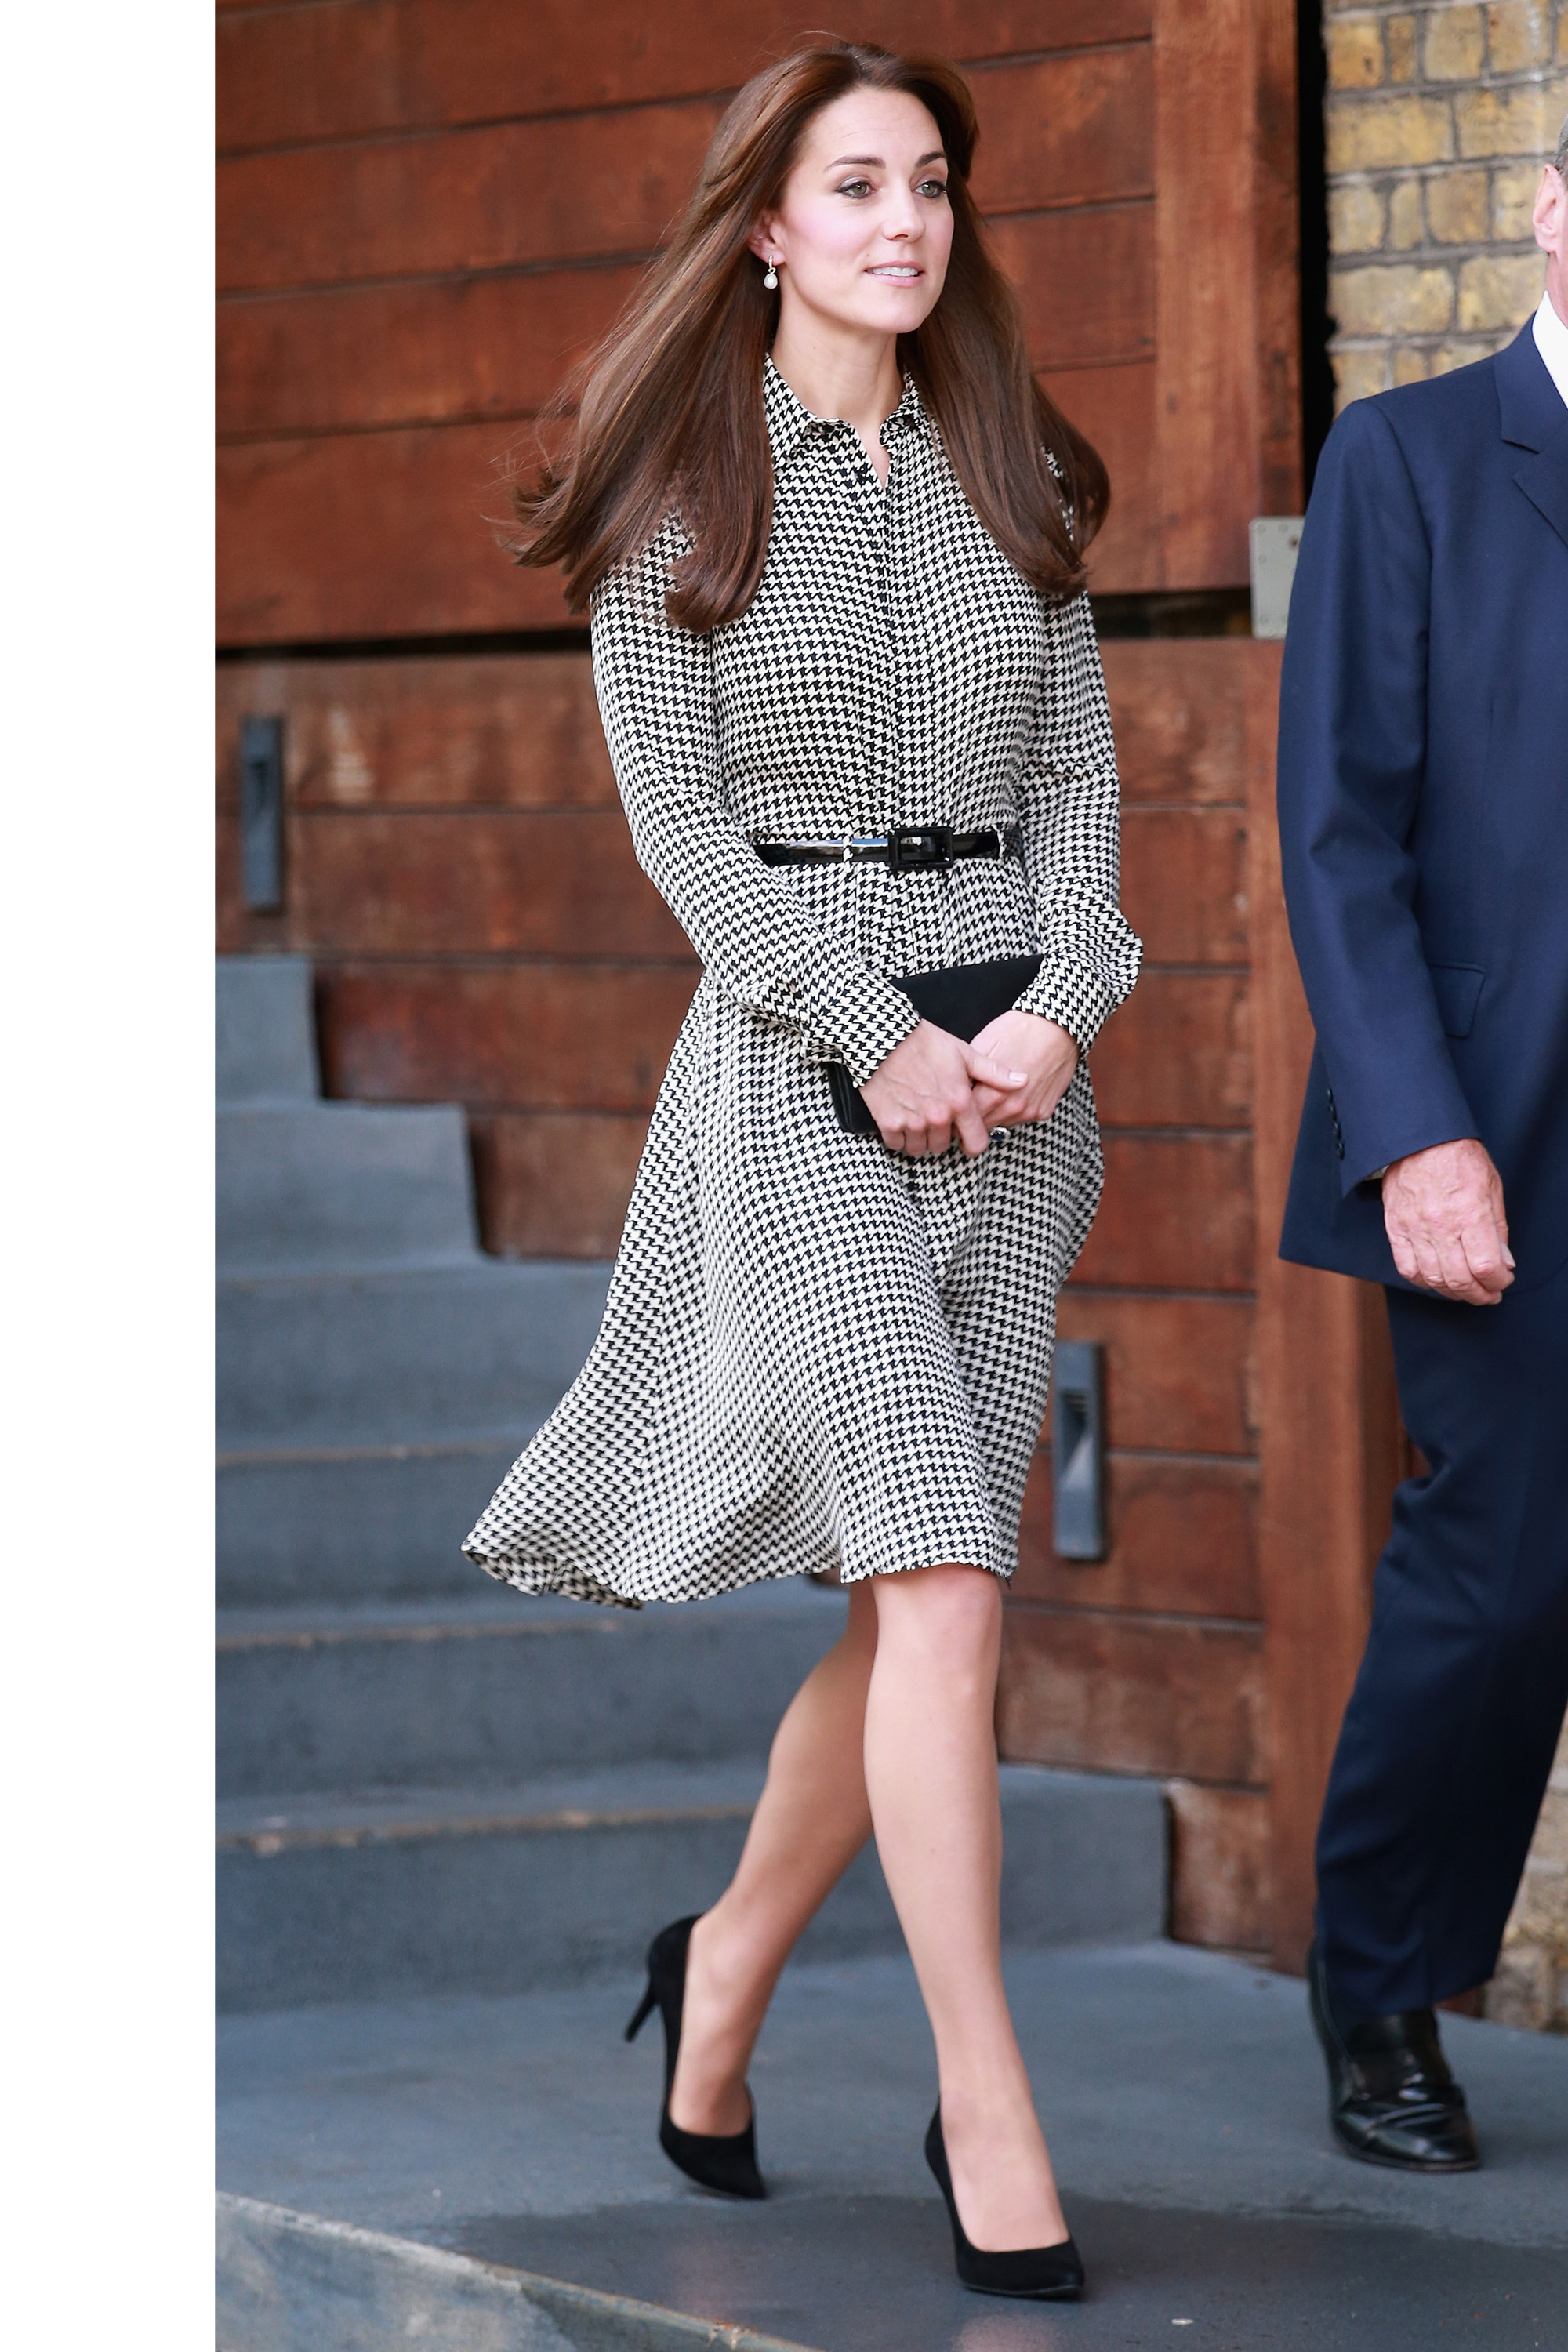 Kate Middleton Best Outfits The Duchess Of Cambridge 39 S Most Fashionable Looks